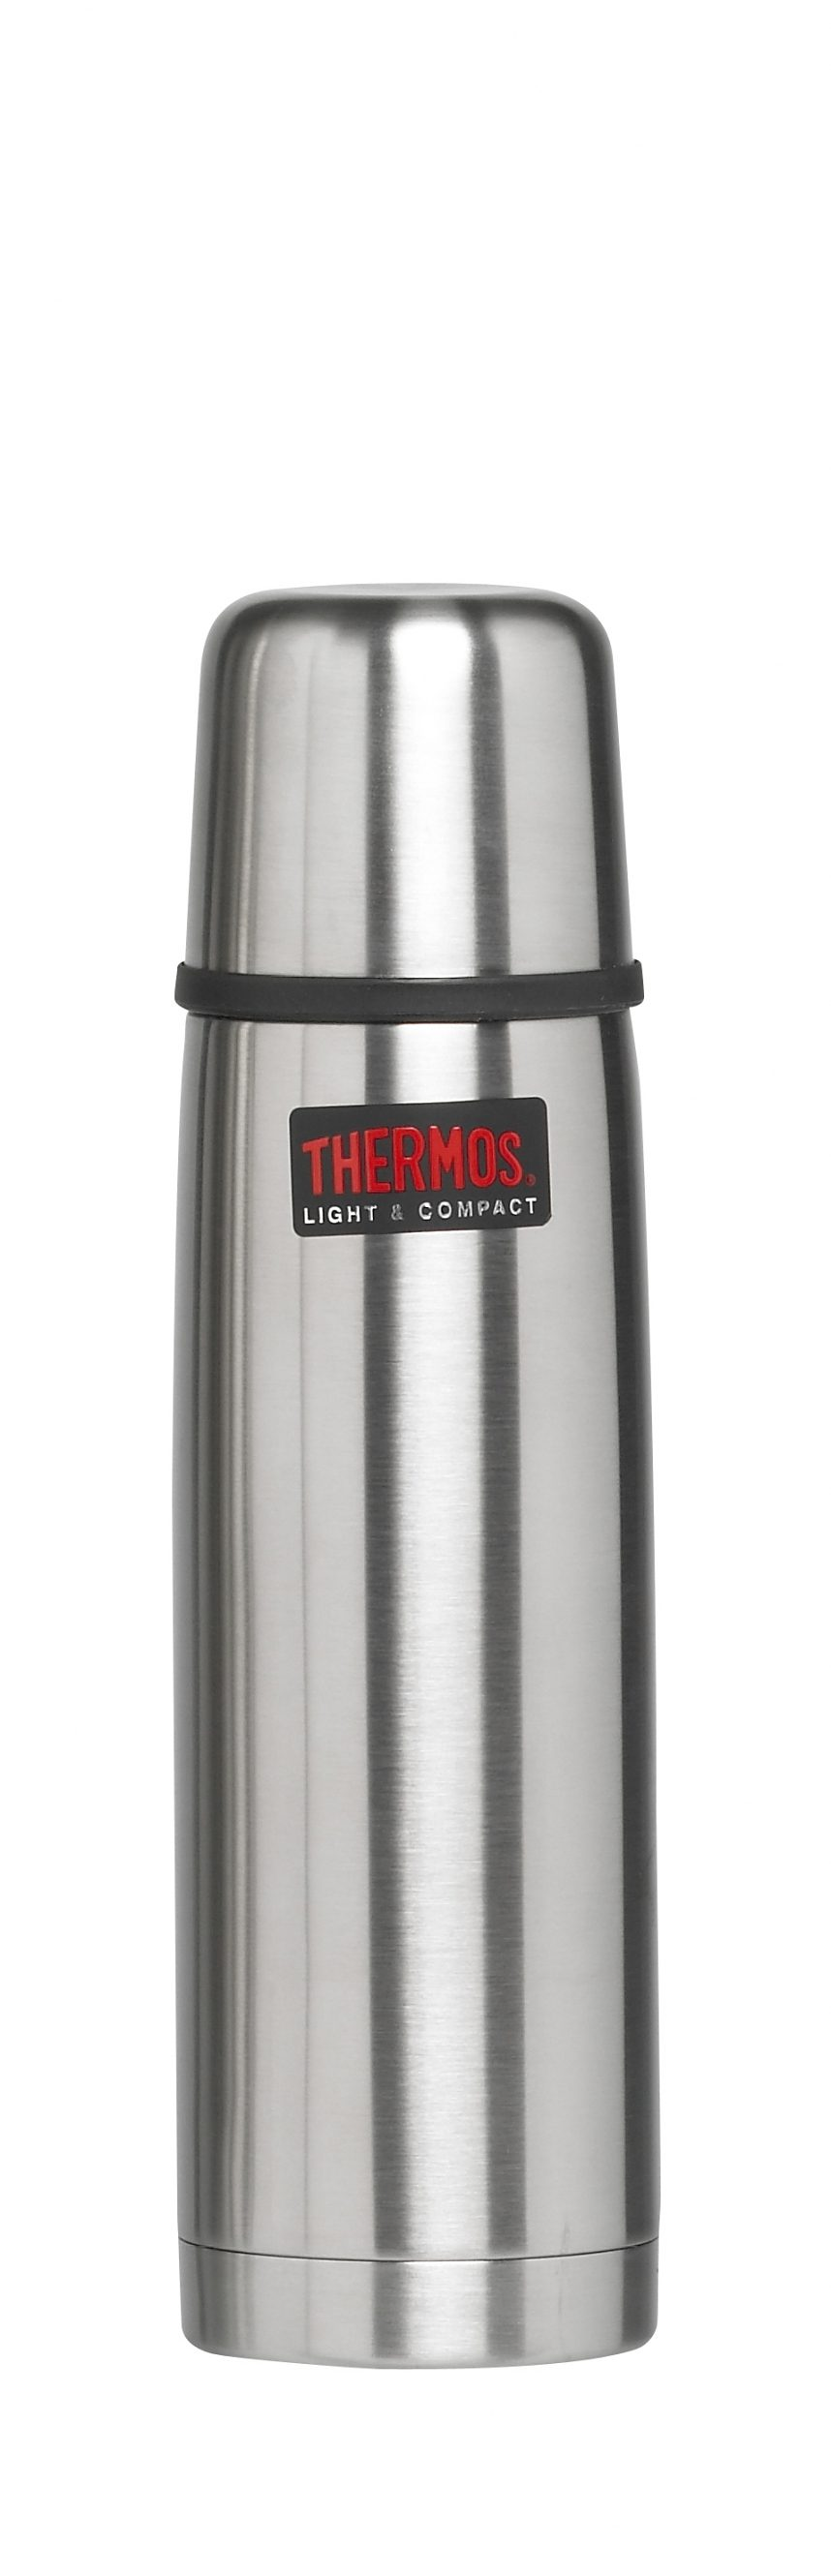 Thermos Trinkflasche »Light & Compact Isolierflasche 350ml«